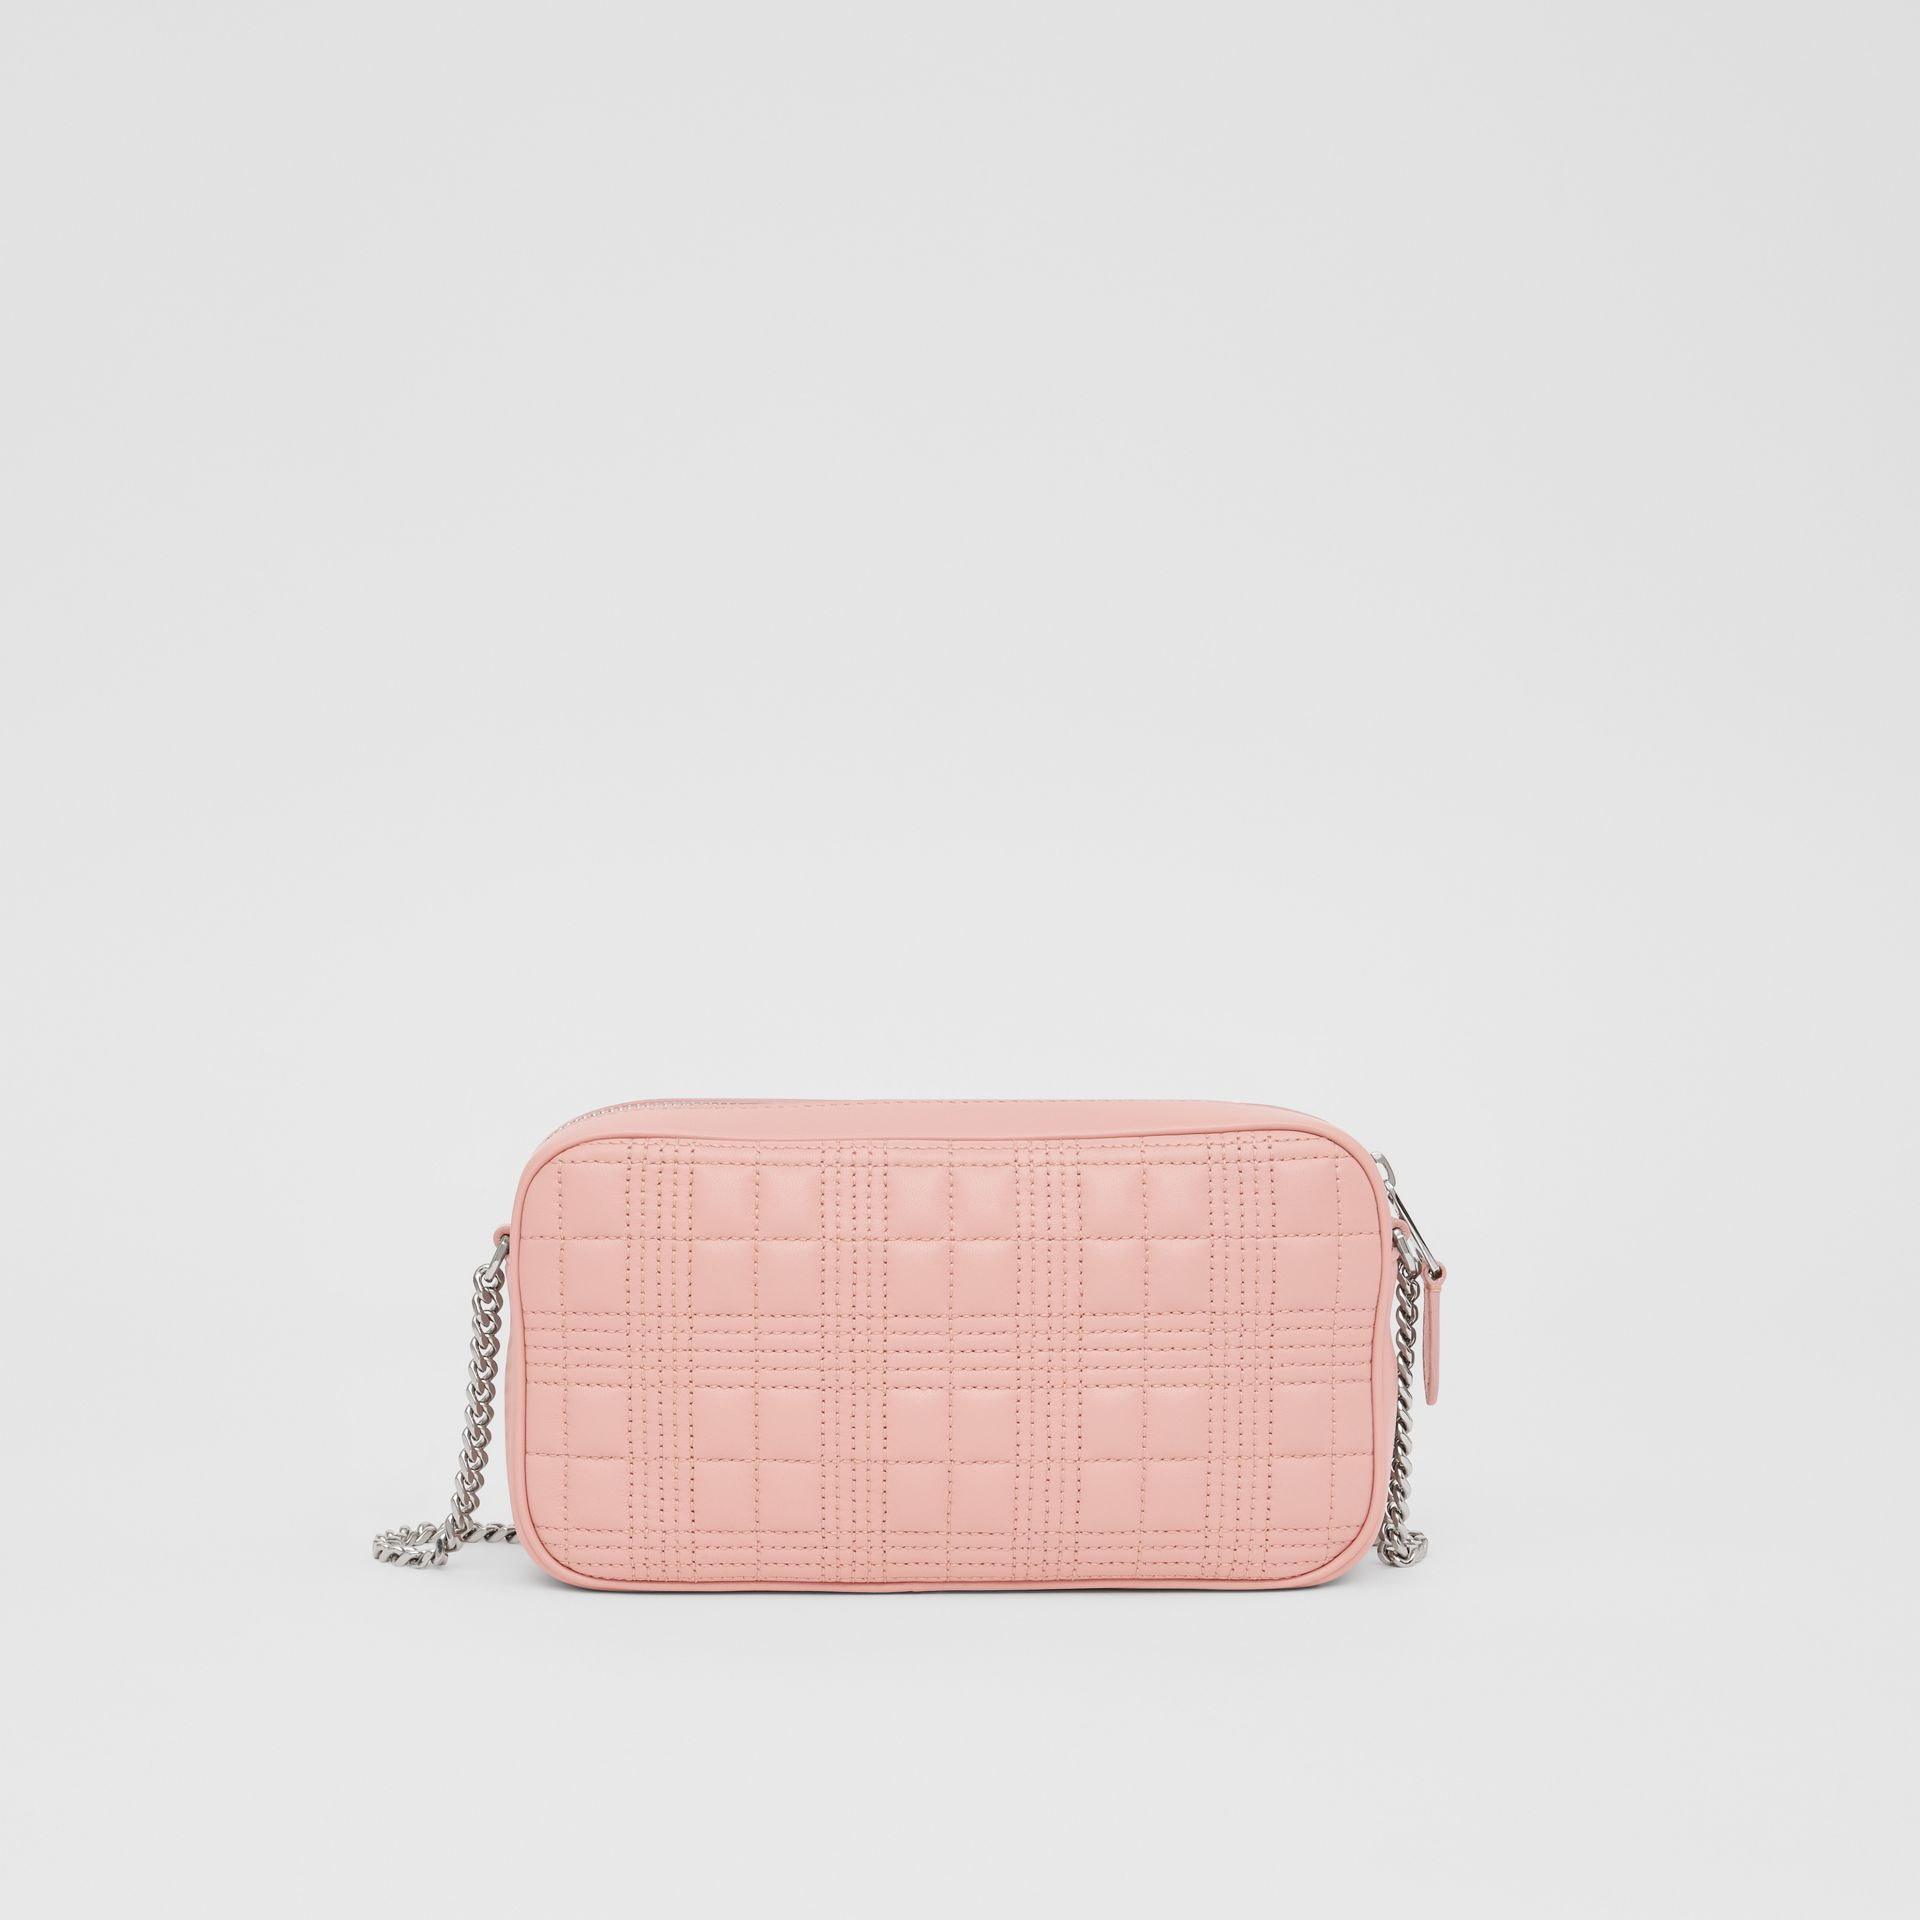 Quilted Lambskin Camera Bag in Blush Pink - Women | Burberry - gallery image 5